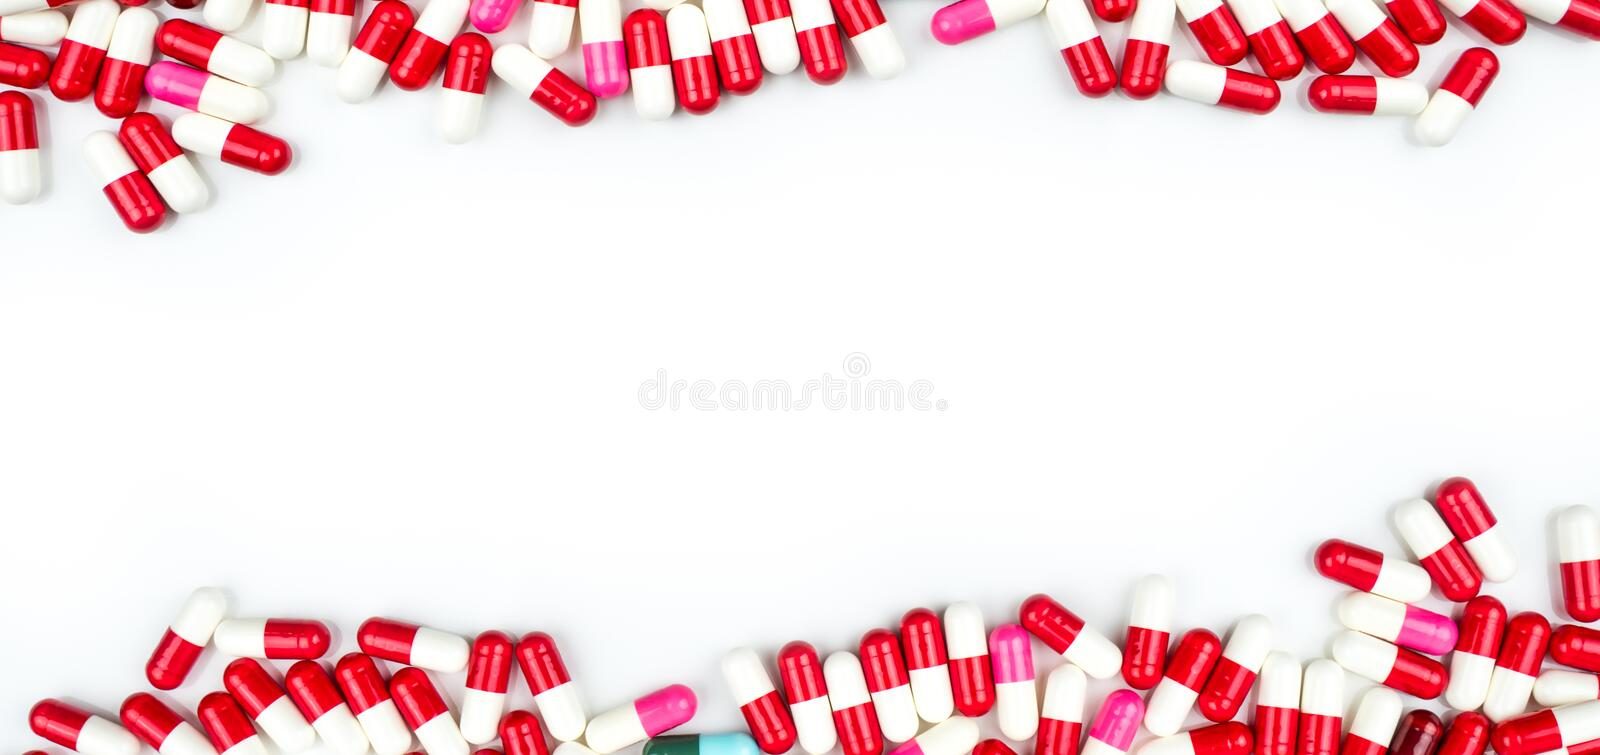 Antibiotic capsules pills isolated on white background with copy space for text. Drug resistance concept. Antibiotics drug use. Colorful of antibiotic capsules royalty free stock images